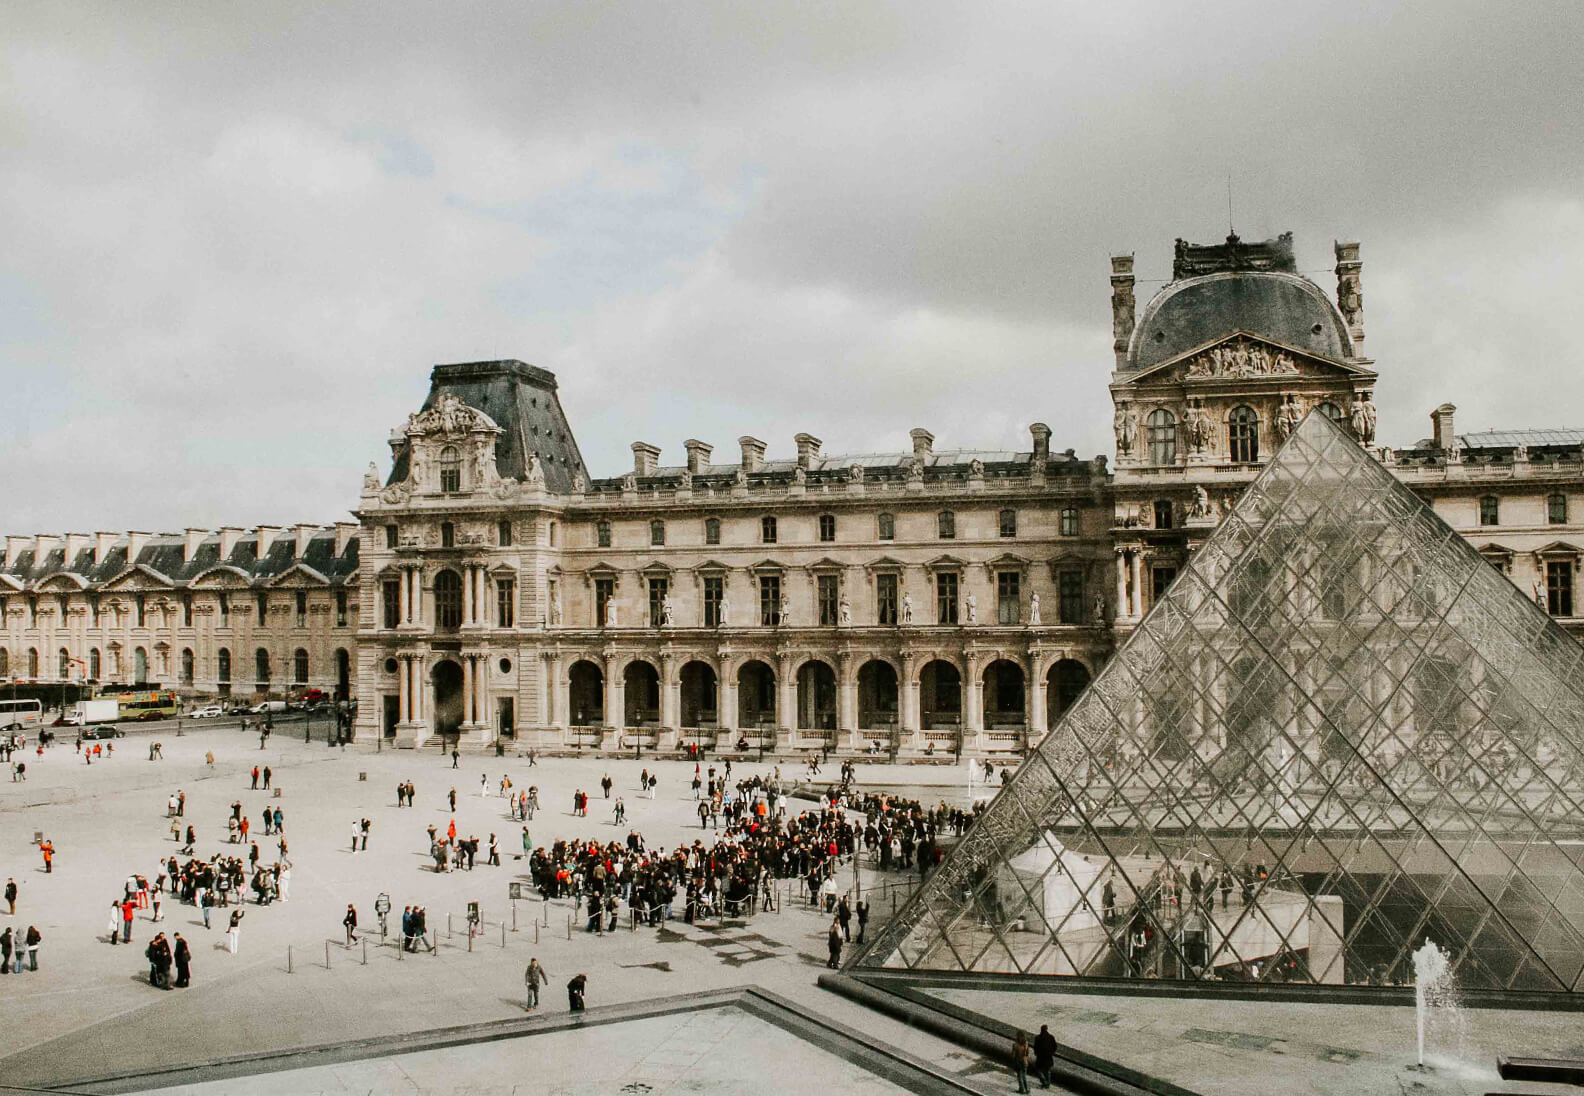 Digital Ladies Travel: Paris Reise Tipps bei Regen